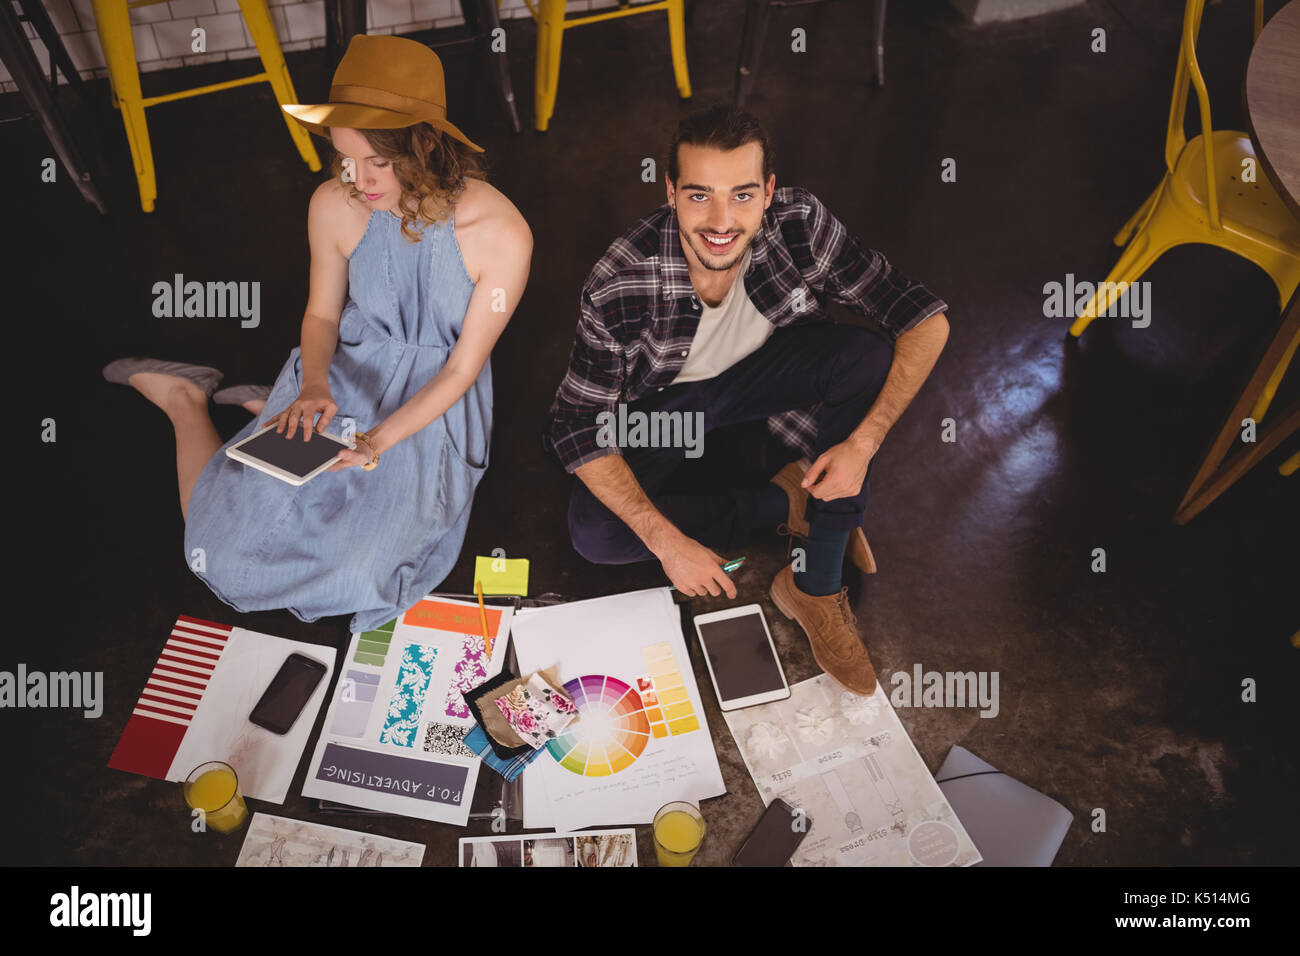 High angle portrait of smiling young male designer sitting by female colleague with sheets on floor at coffee shop - Stock Image